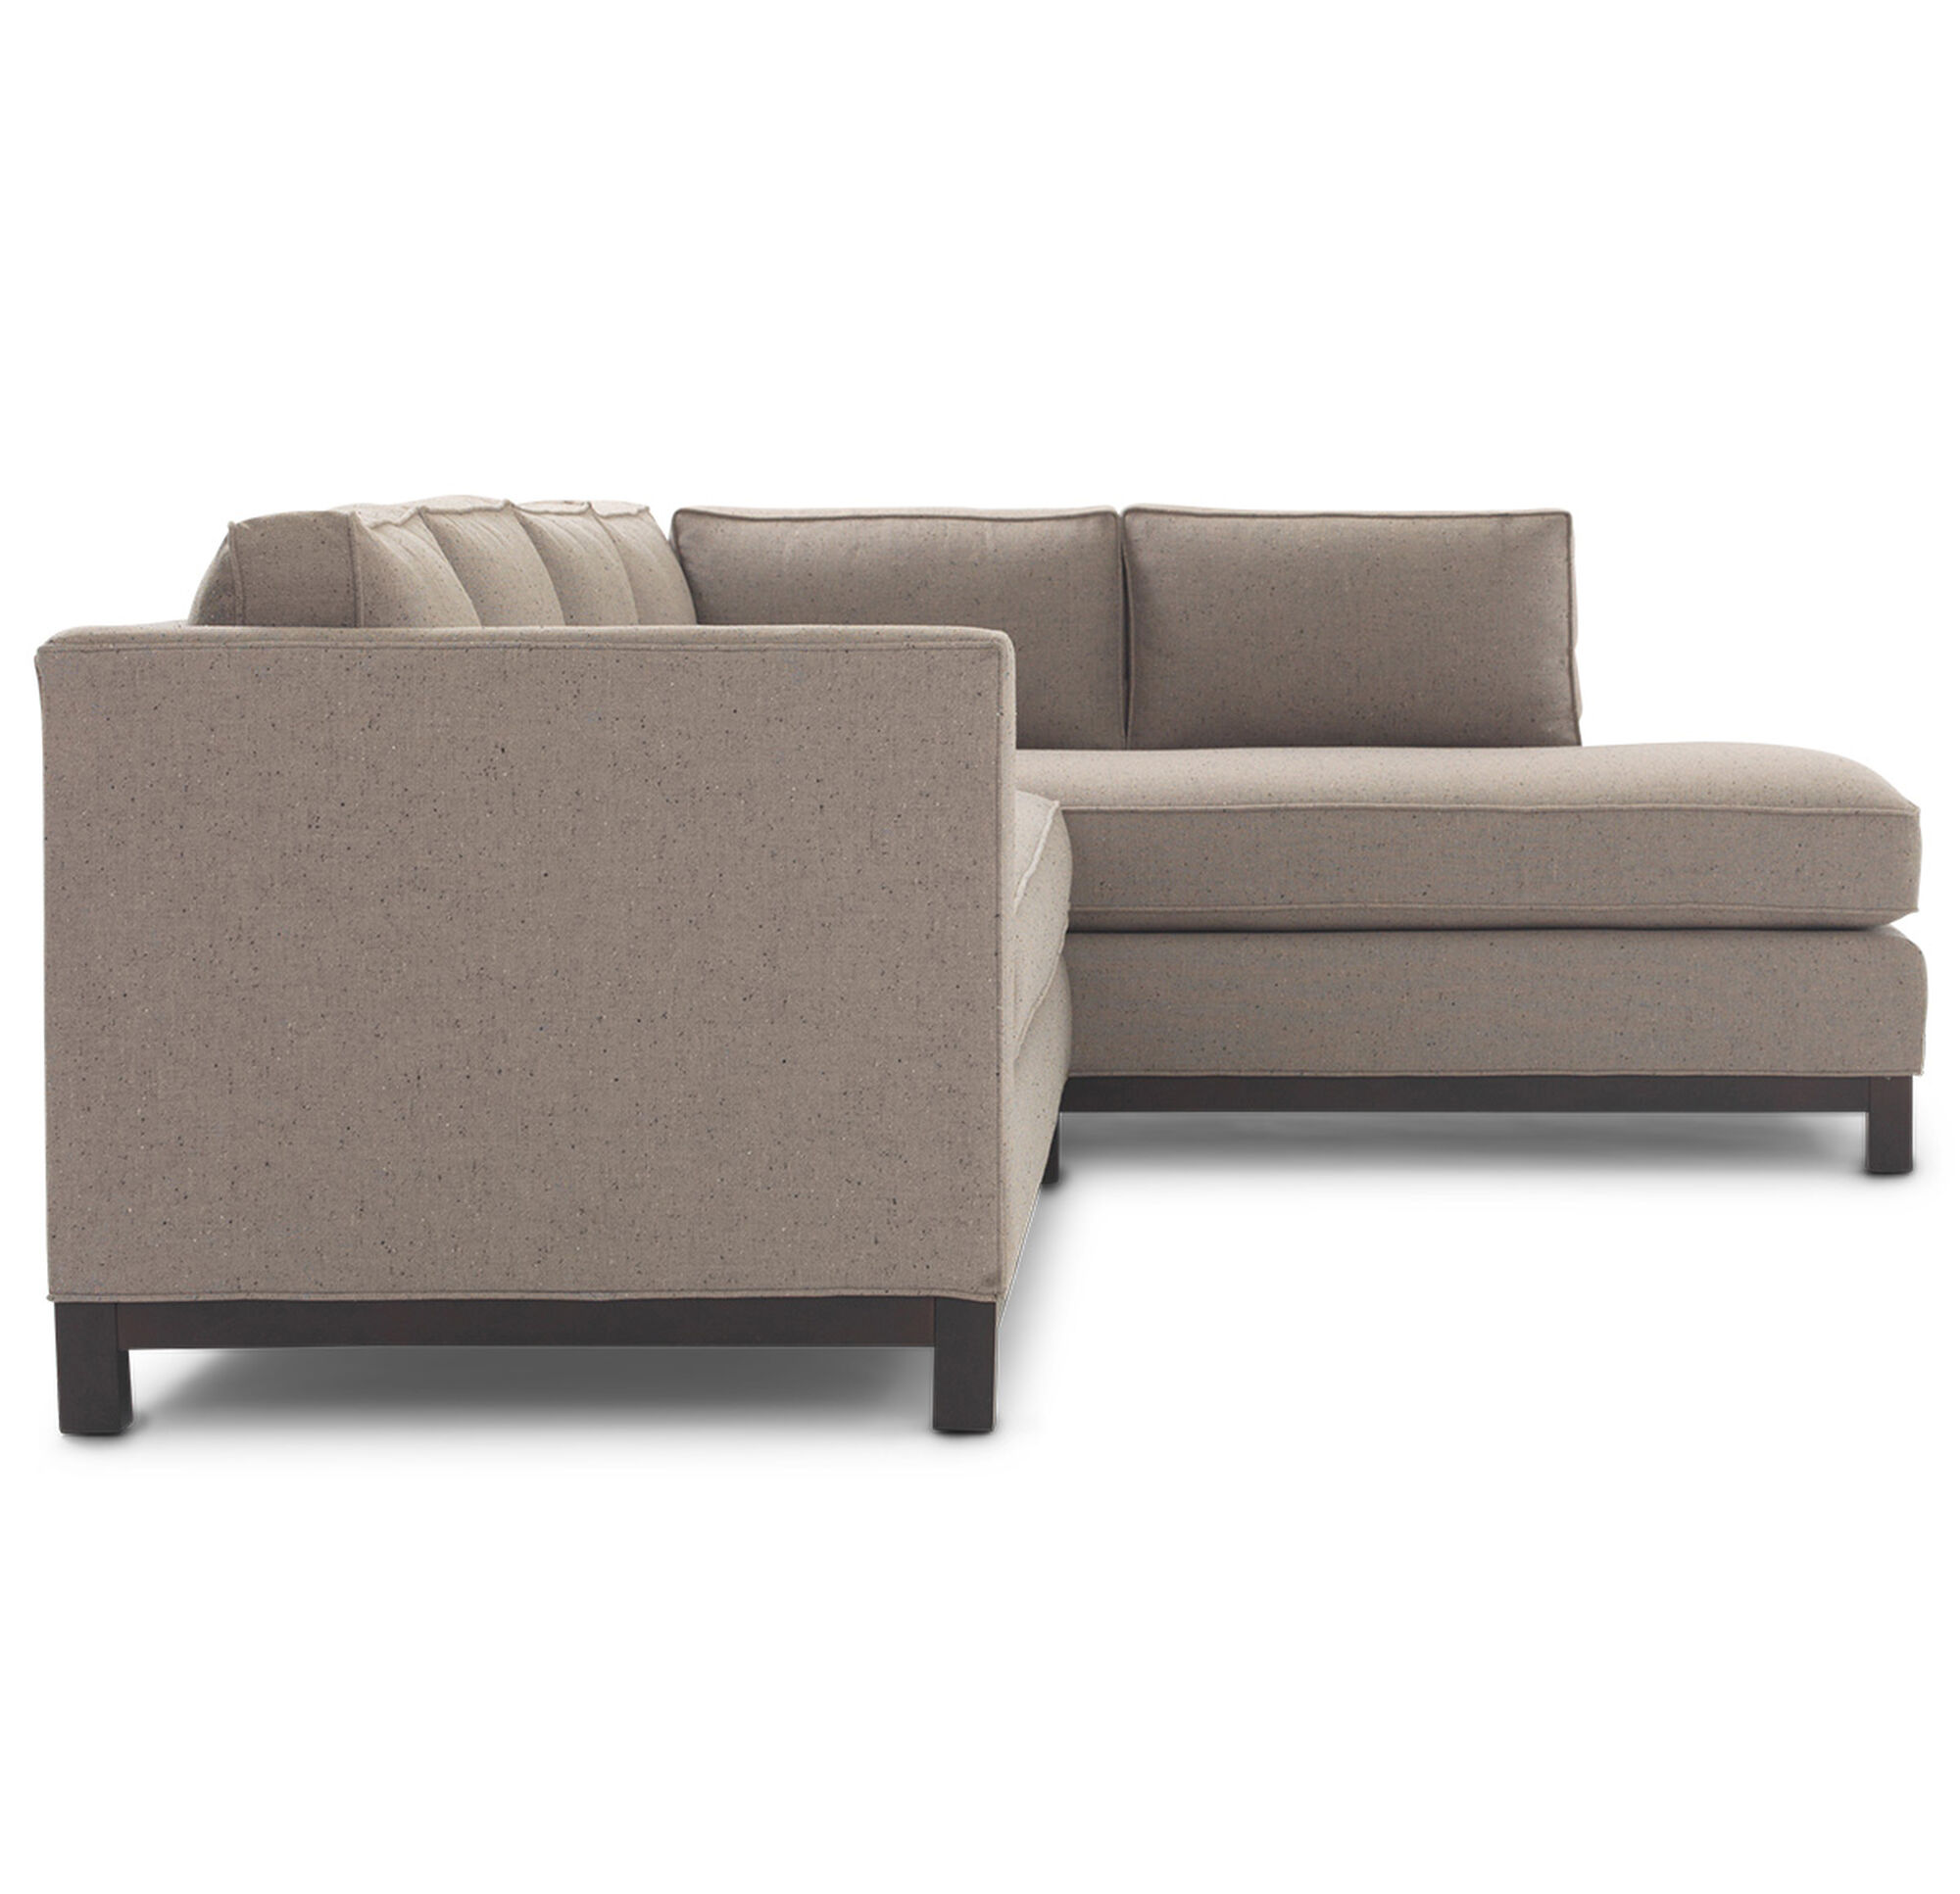 Clifton sofa clifton sectional by mitc gold bob williams for Sectional sofa hawaii